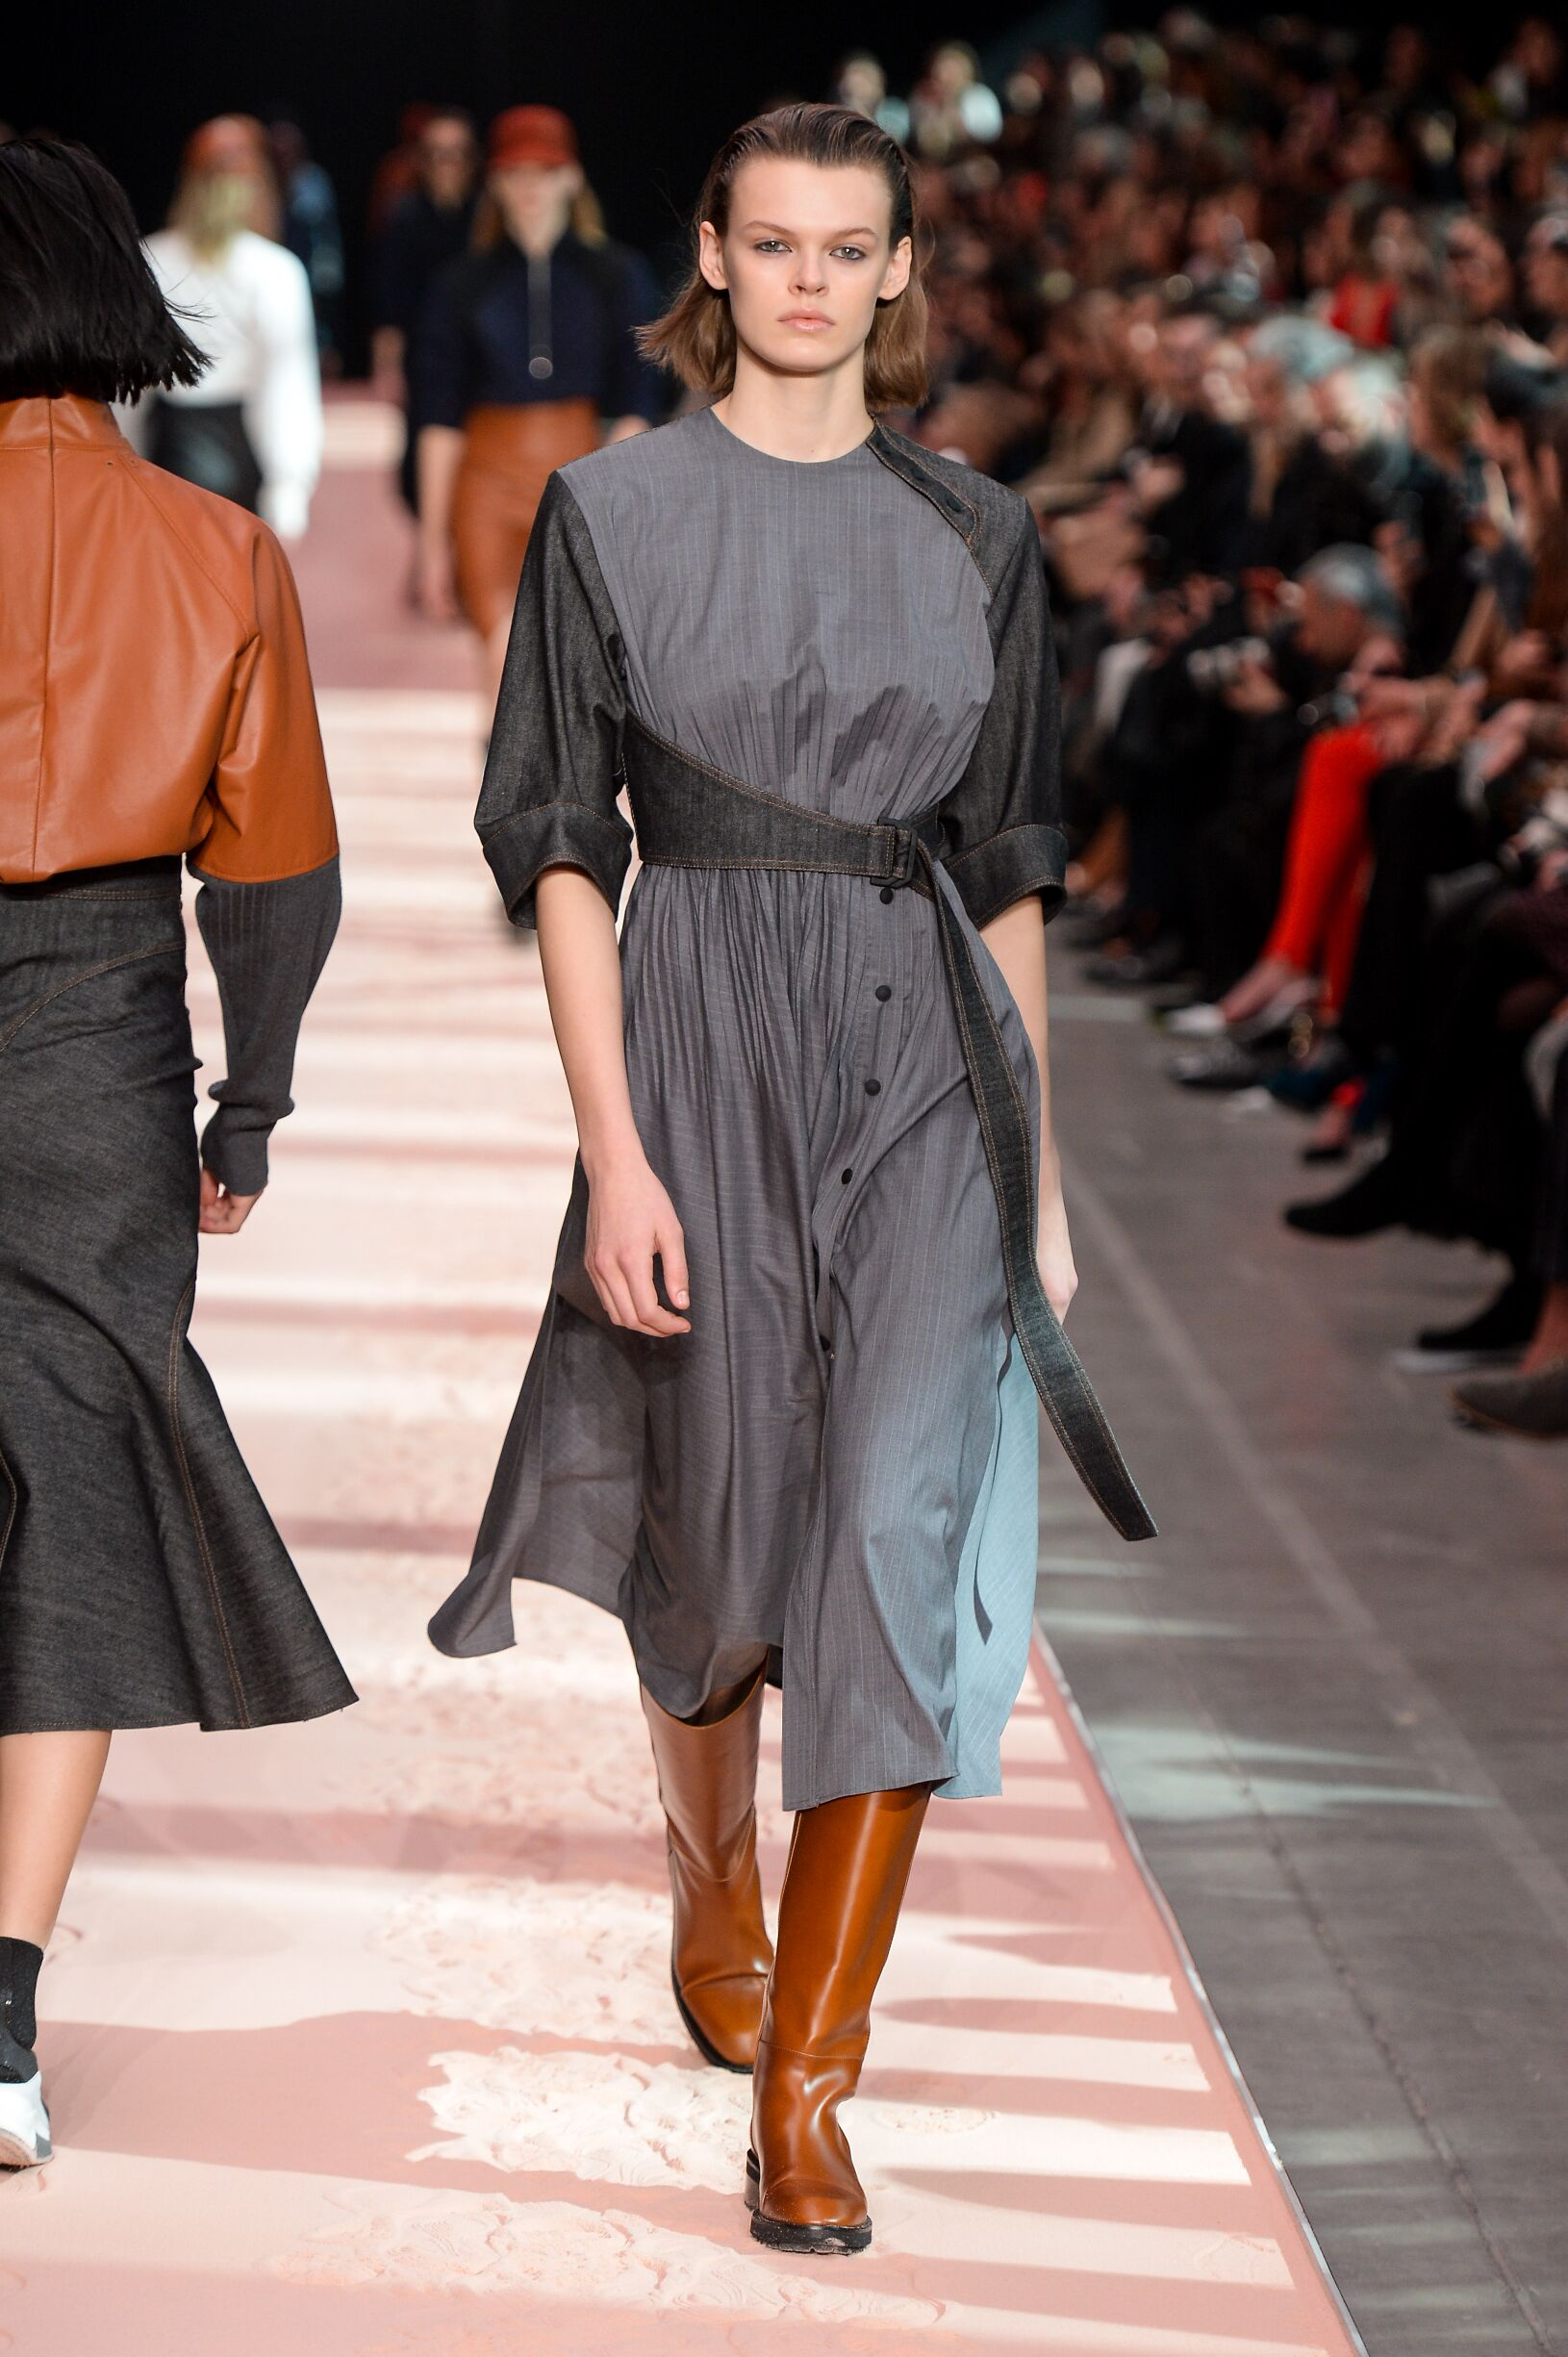 Catwalk Sportmax Woman Fashion Show Winter 2019